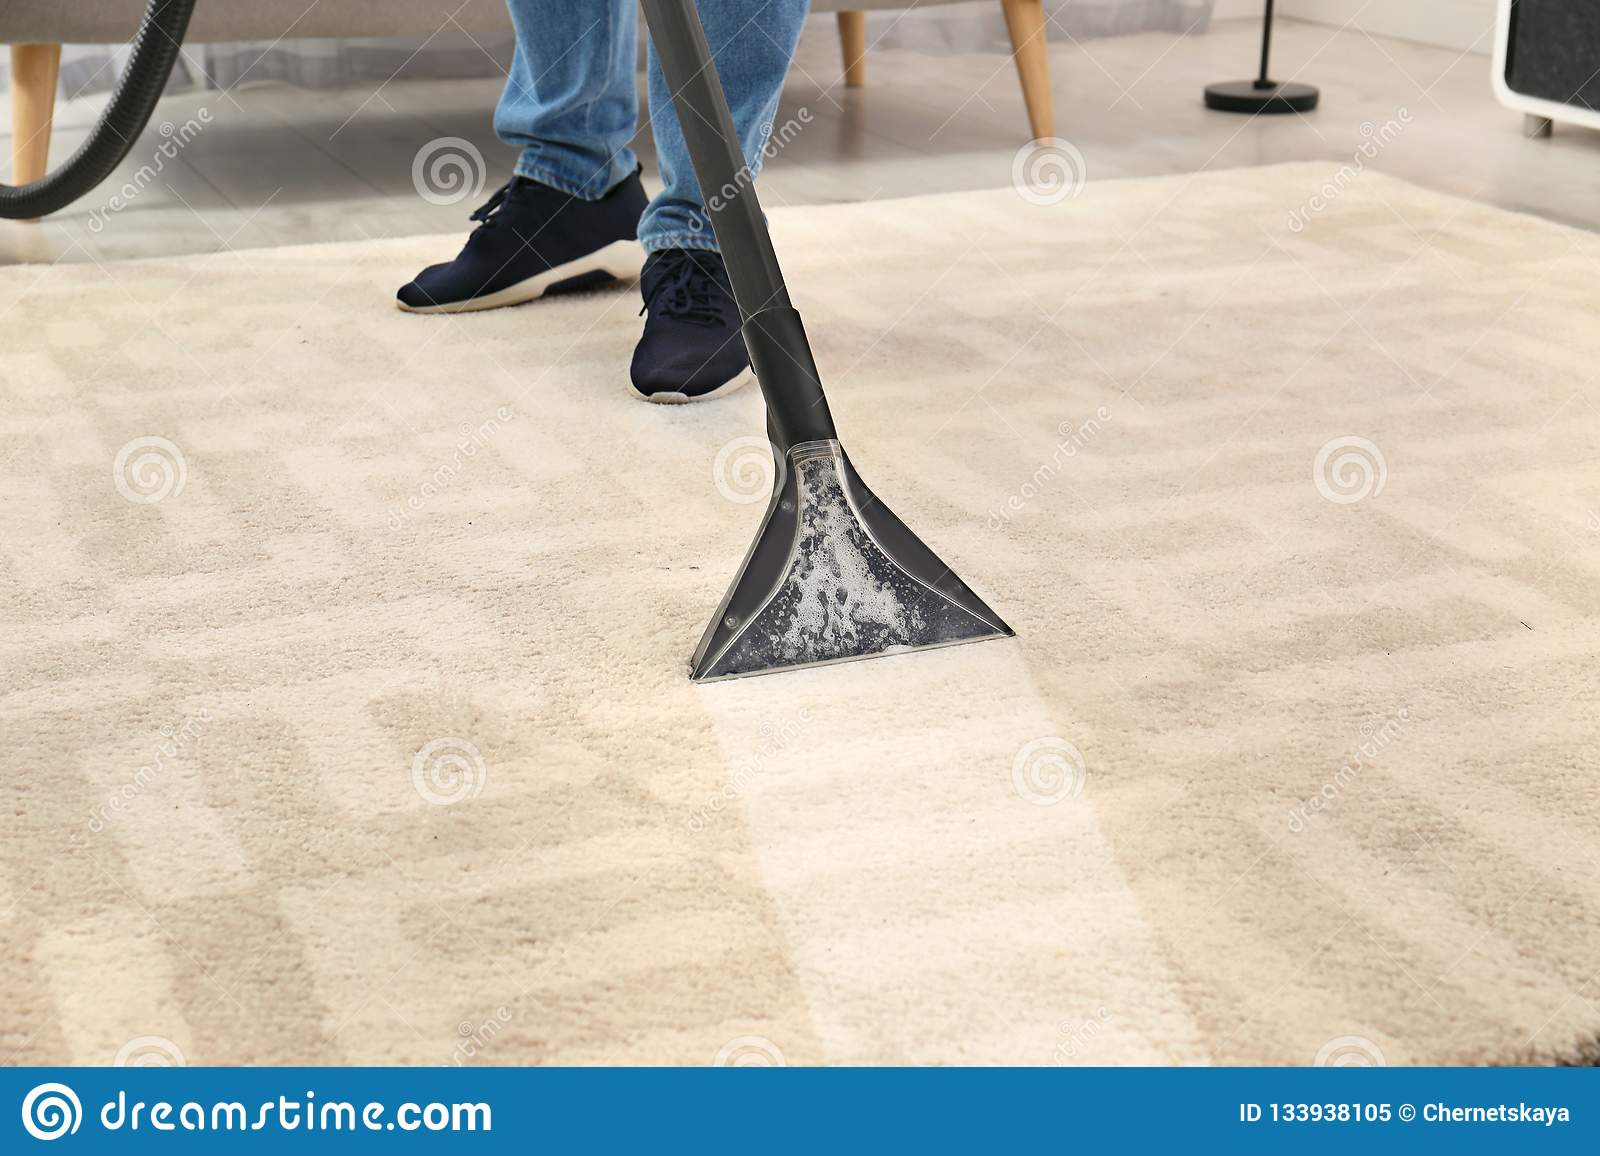 Man removing dirt from carpet with vacuum cleaner